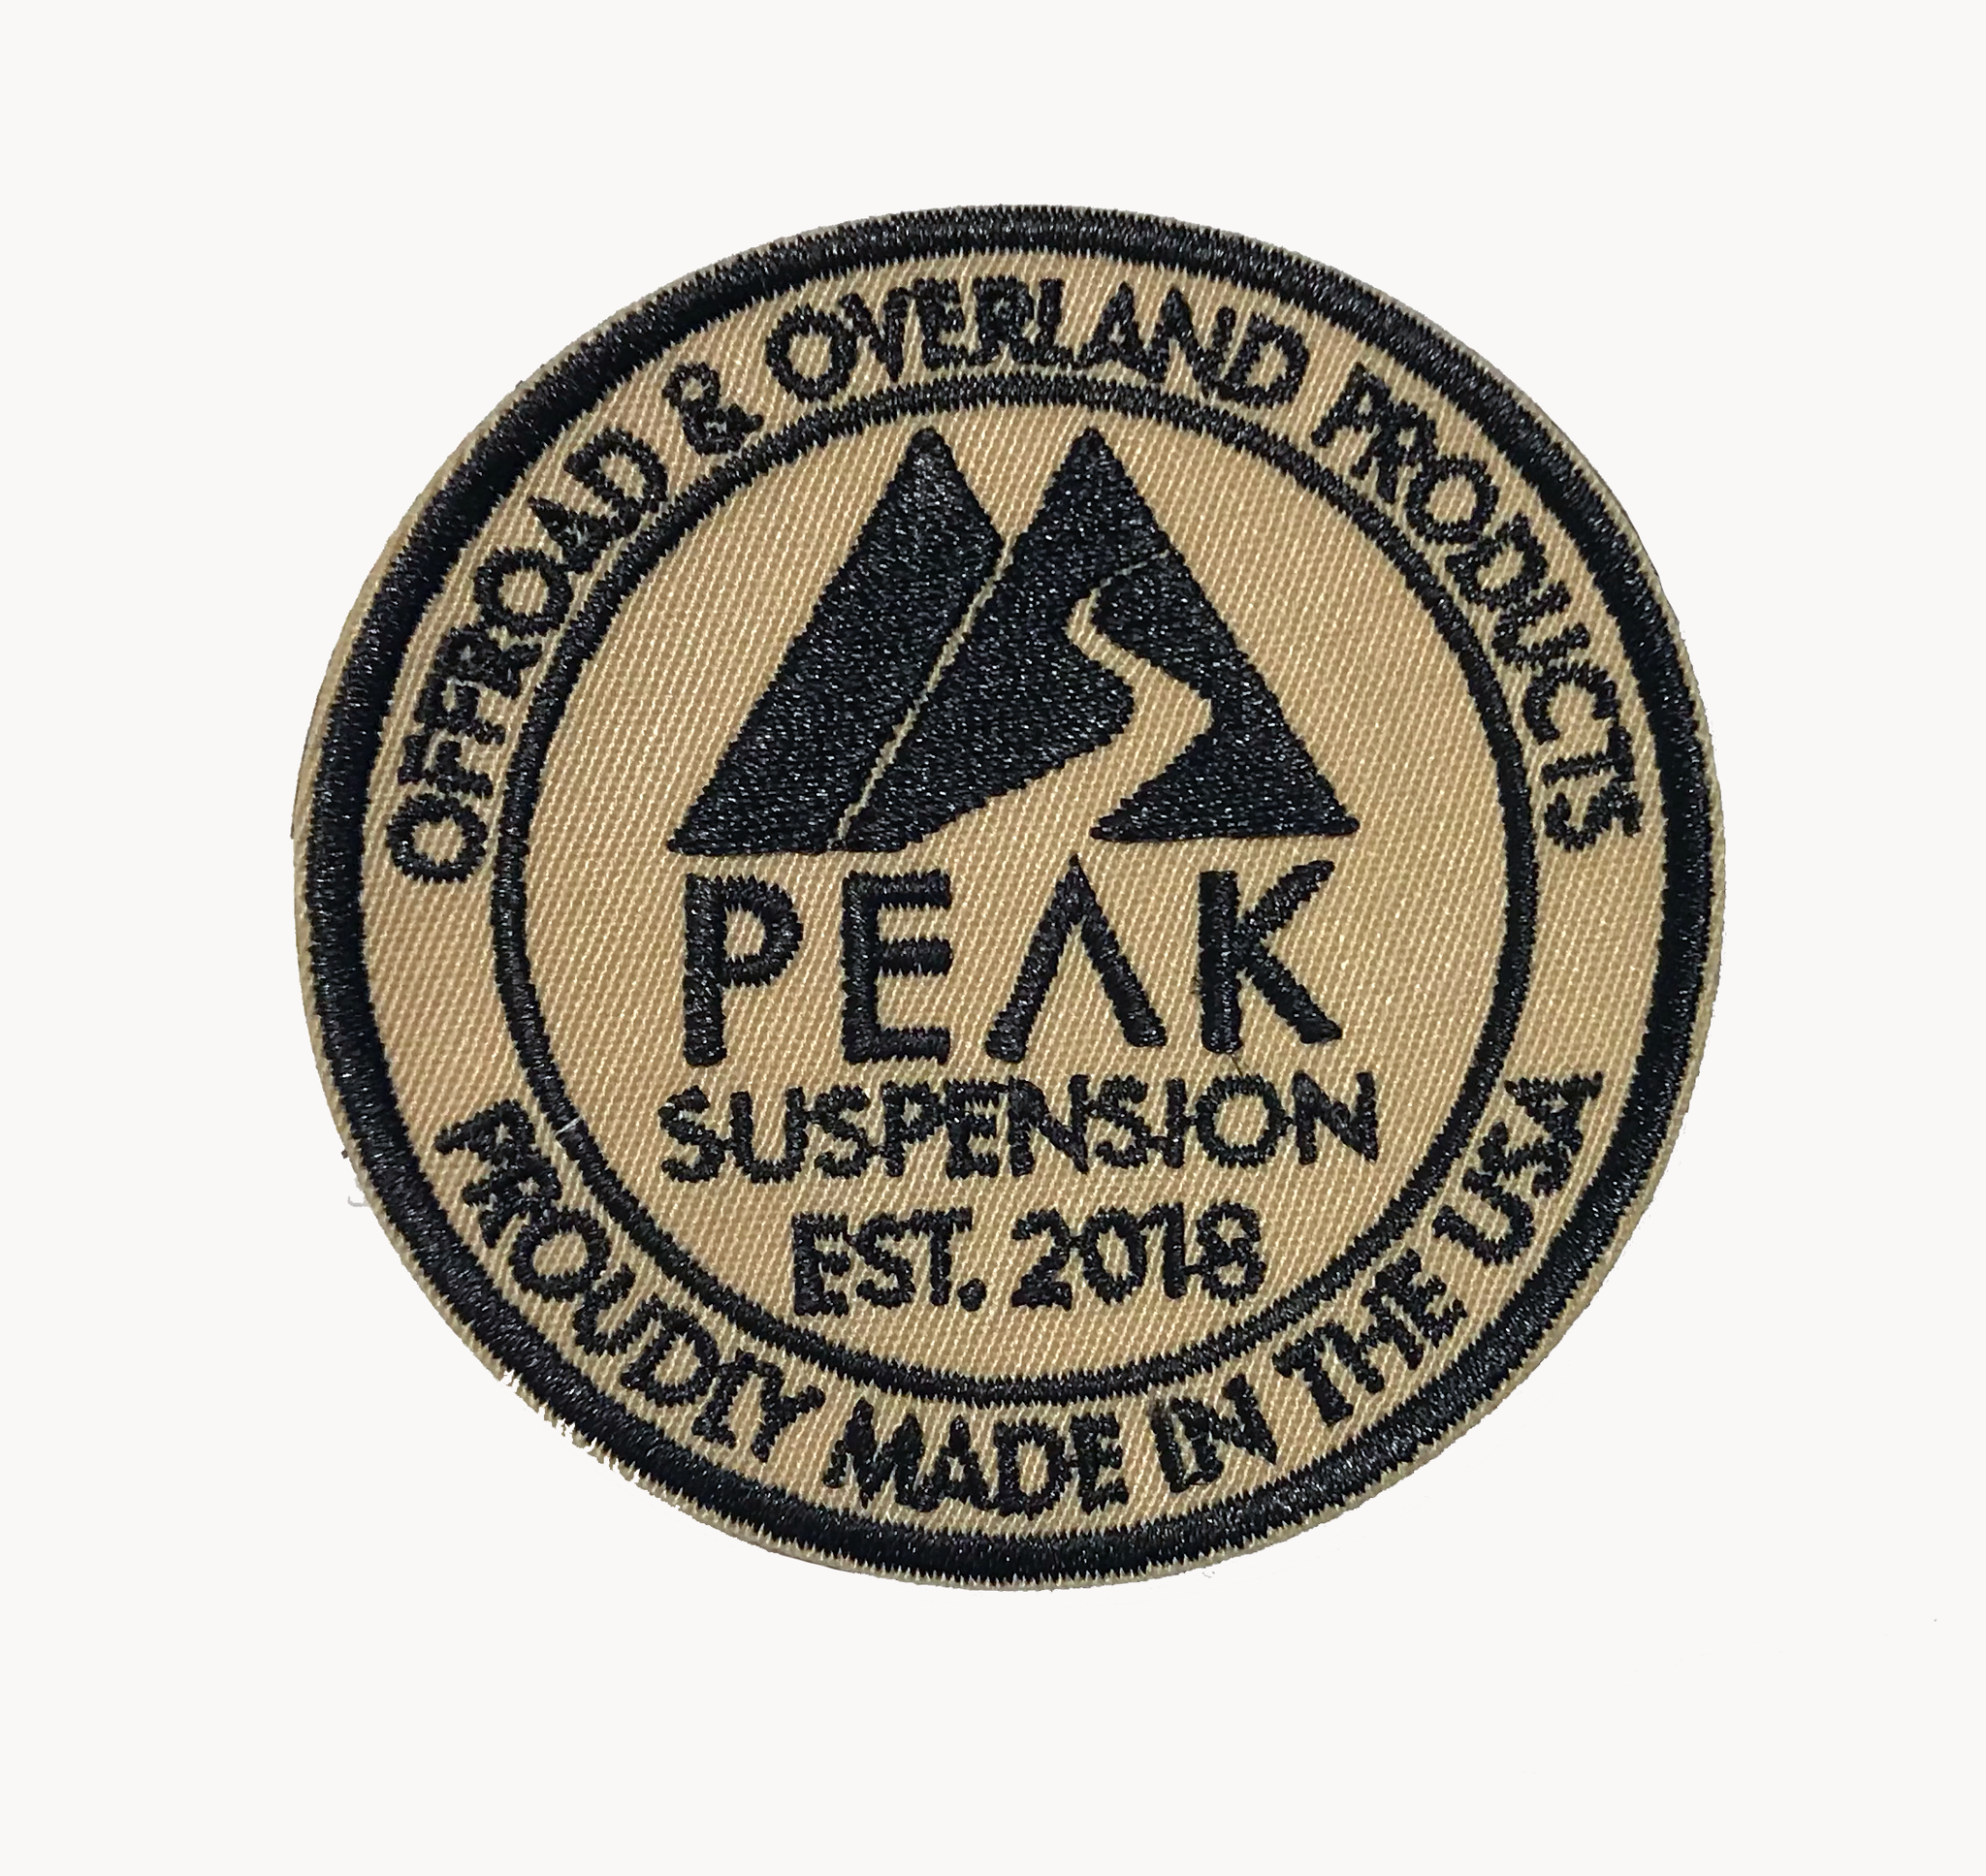 2019 Peak Suspension Patch